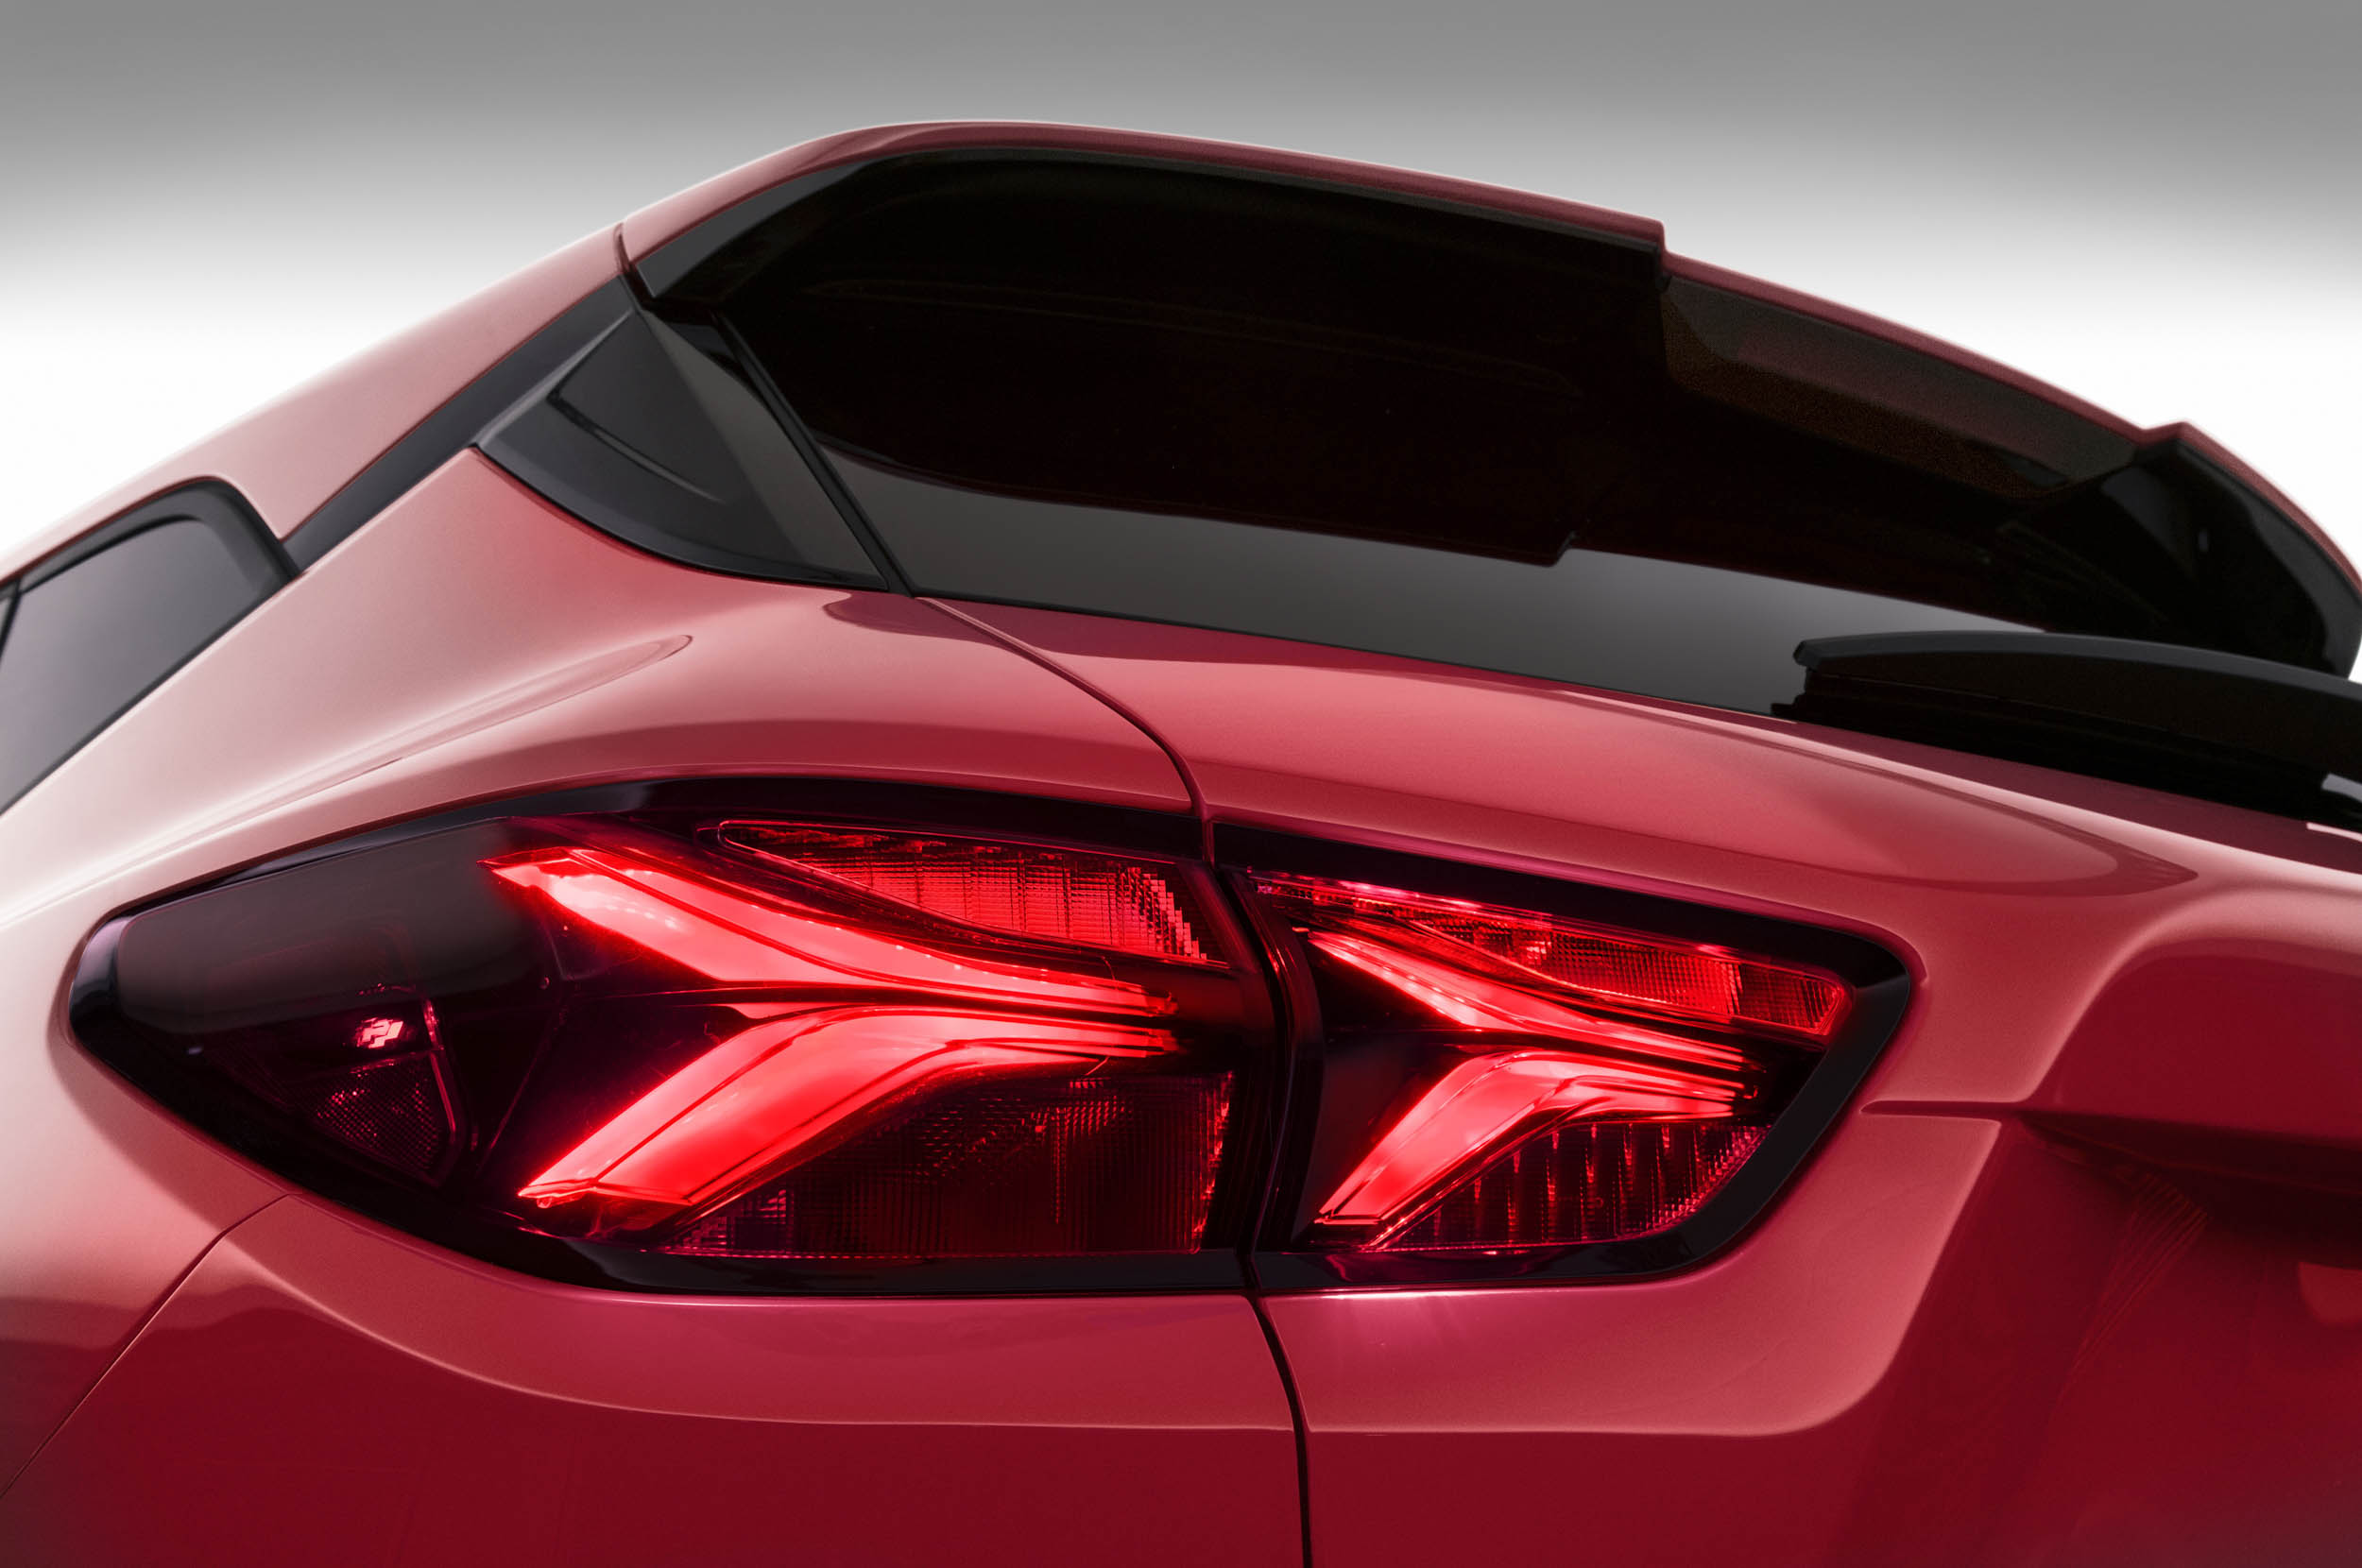 2019 Chevrolet Blazer tail light